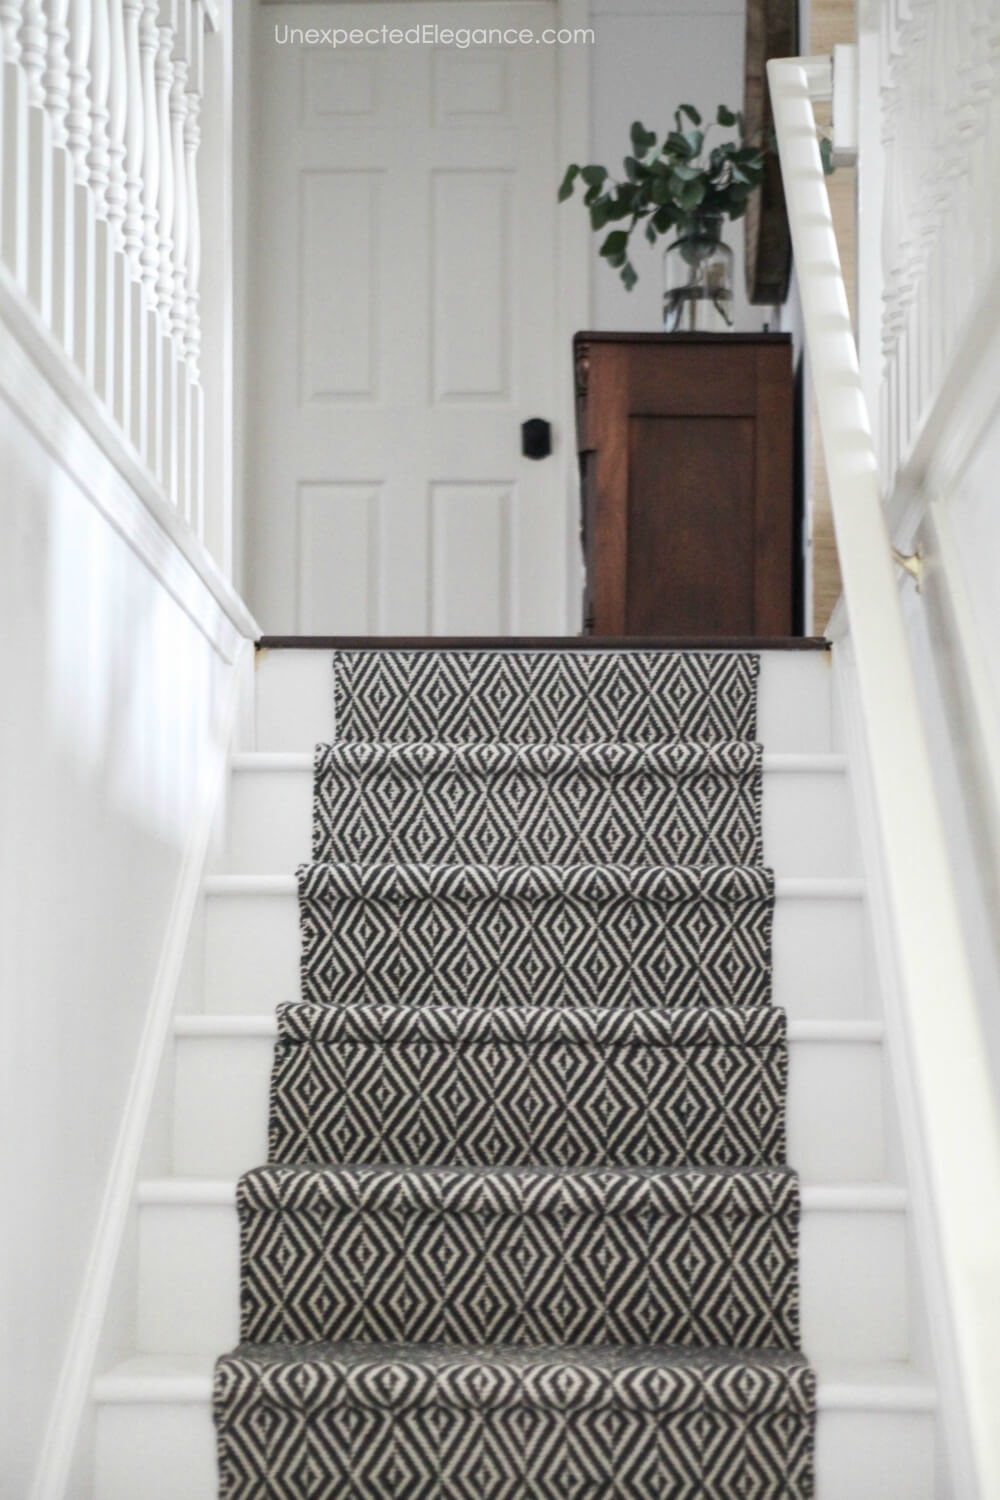 How To Replace Carpet With An Inexpensive Stair Runner For Around 100 | Stair Runners For Carpeted Steps | Flooring | Youtube | Stair Rods | Wood | Rugs